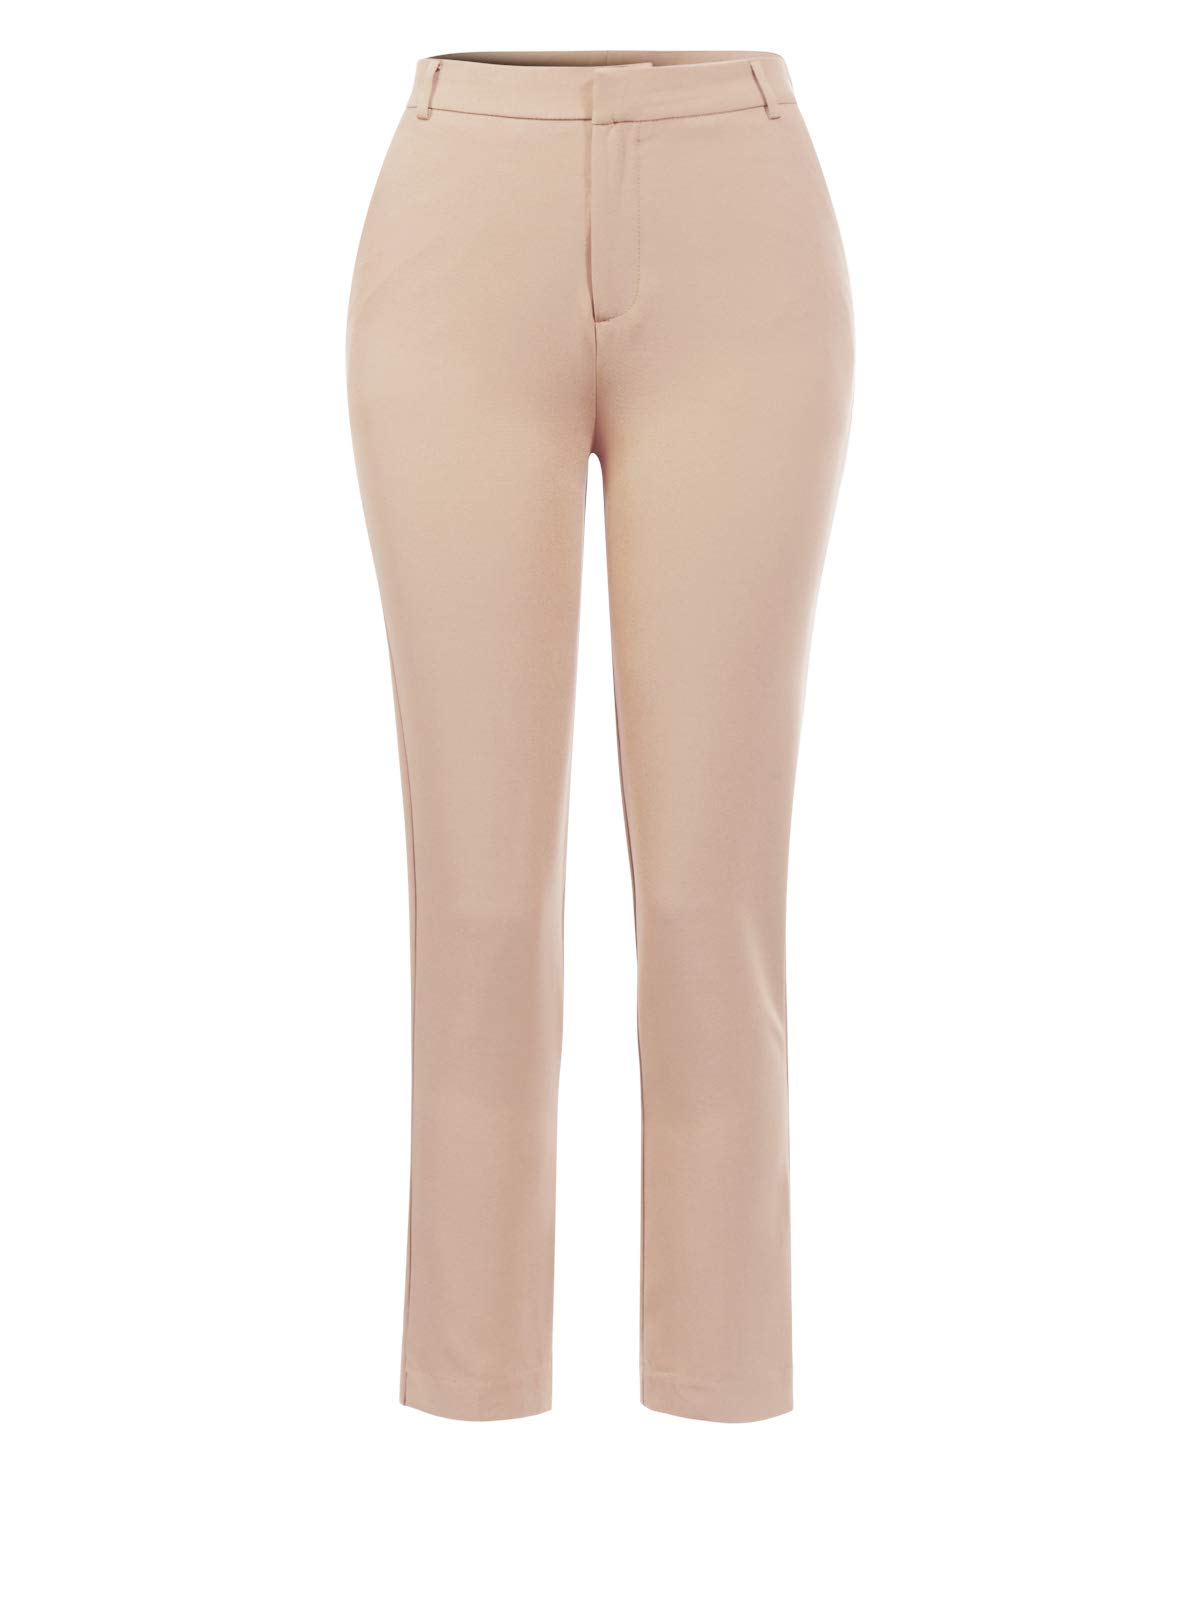 Instarode Women's Classic Straight Slim Solid Trousers Casual Business Office Pants,Ipaw031 Khaki,Small